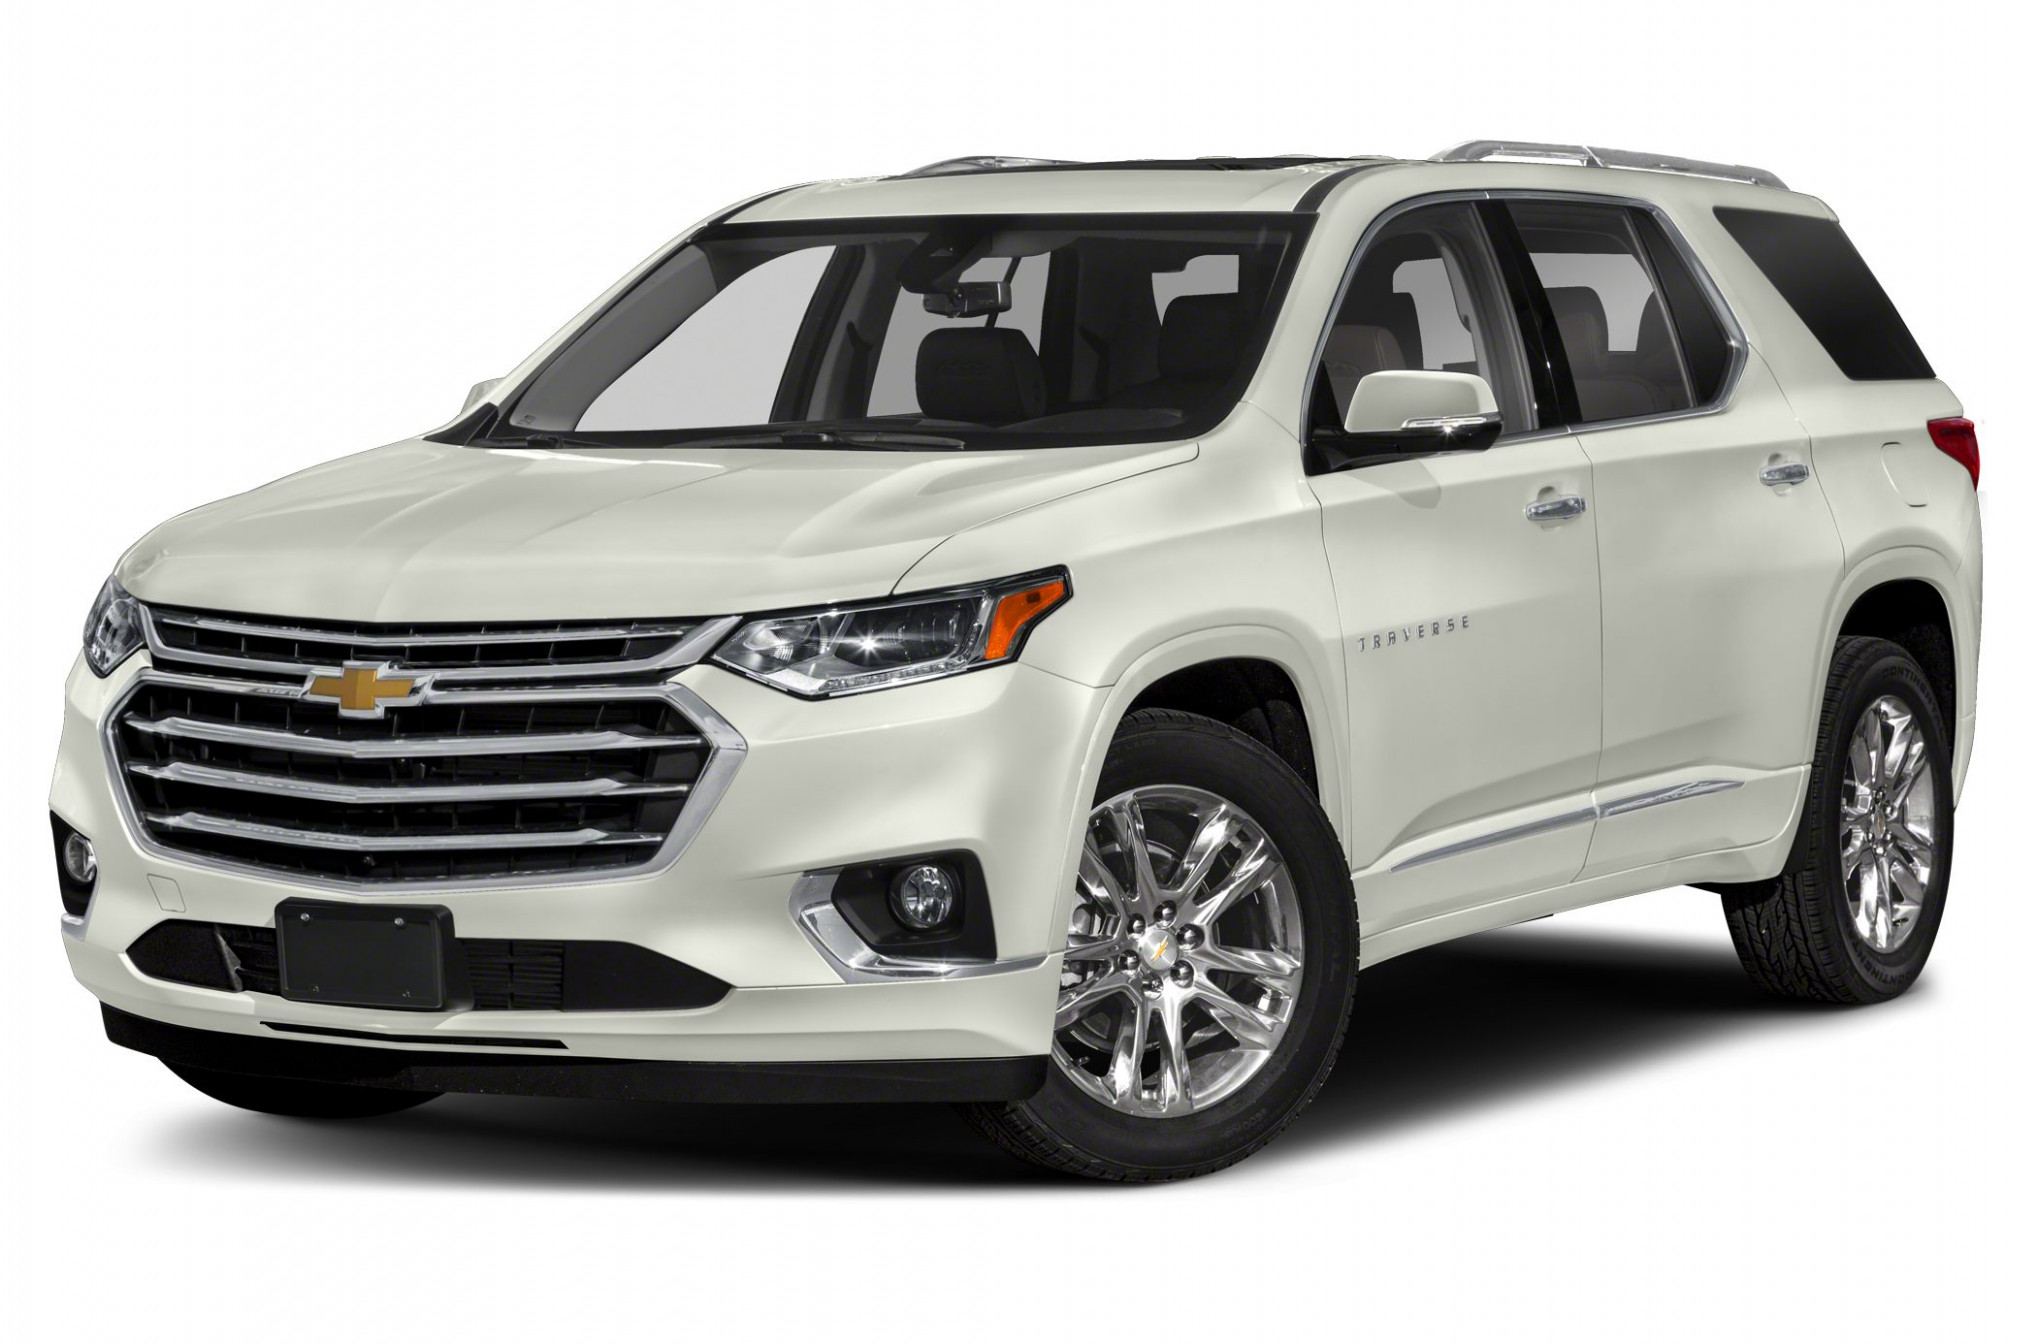 7 Chevrolet Traverse Premier Front-wheel Drive Pricing and Options